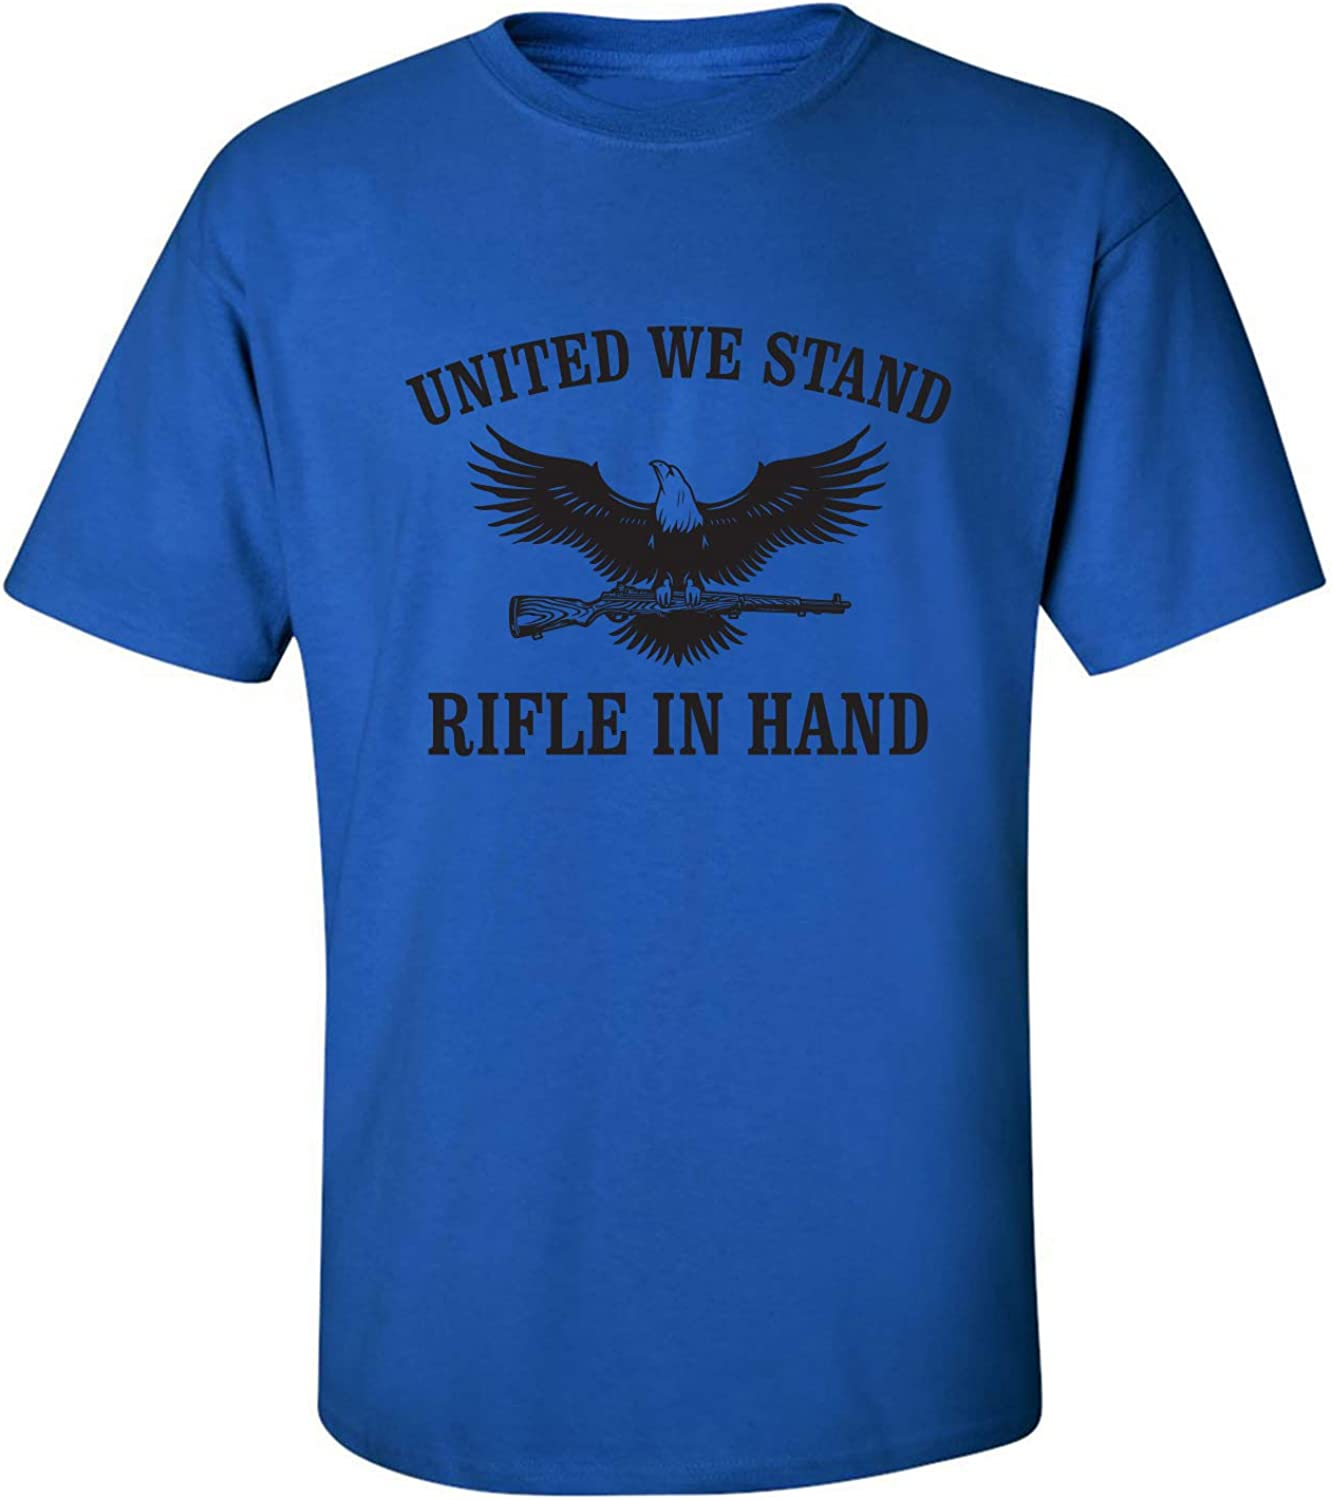 United We Stand Rifle in Hand Adult Short Sleeve T-Shirt